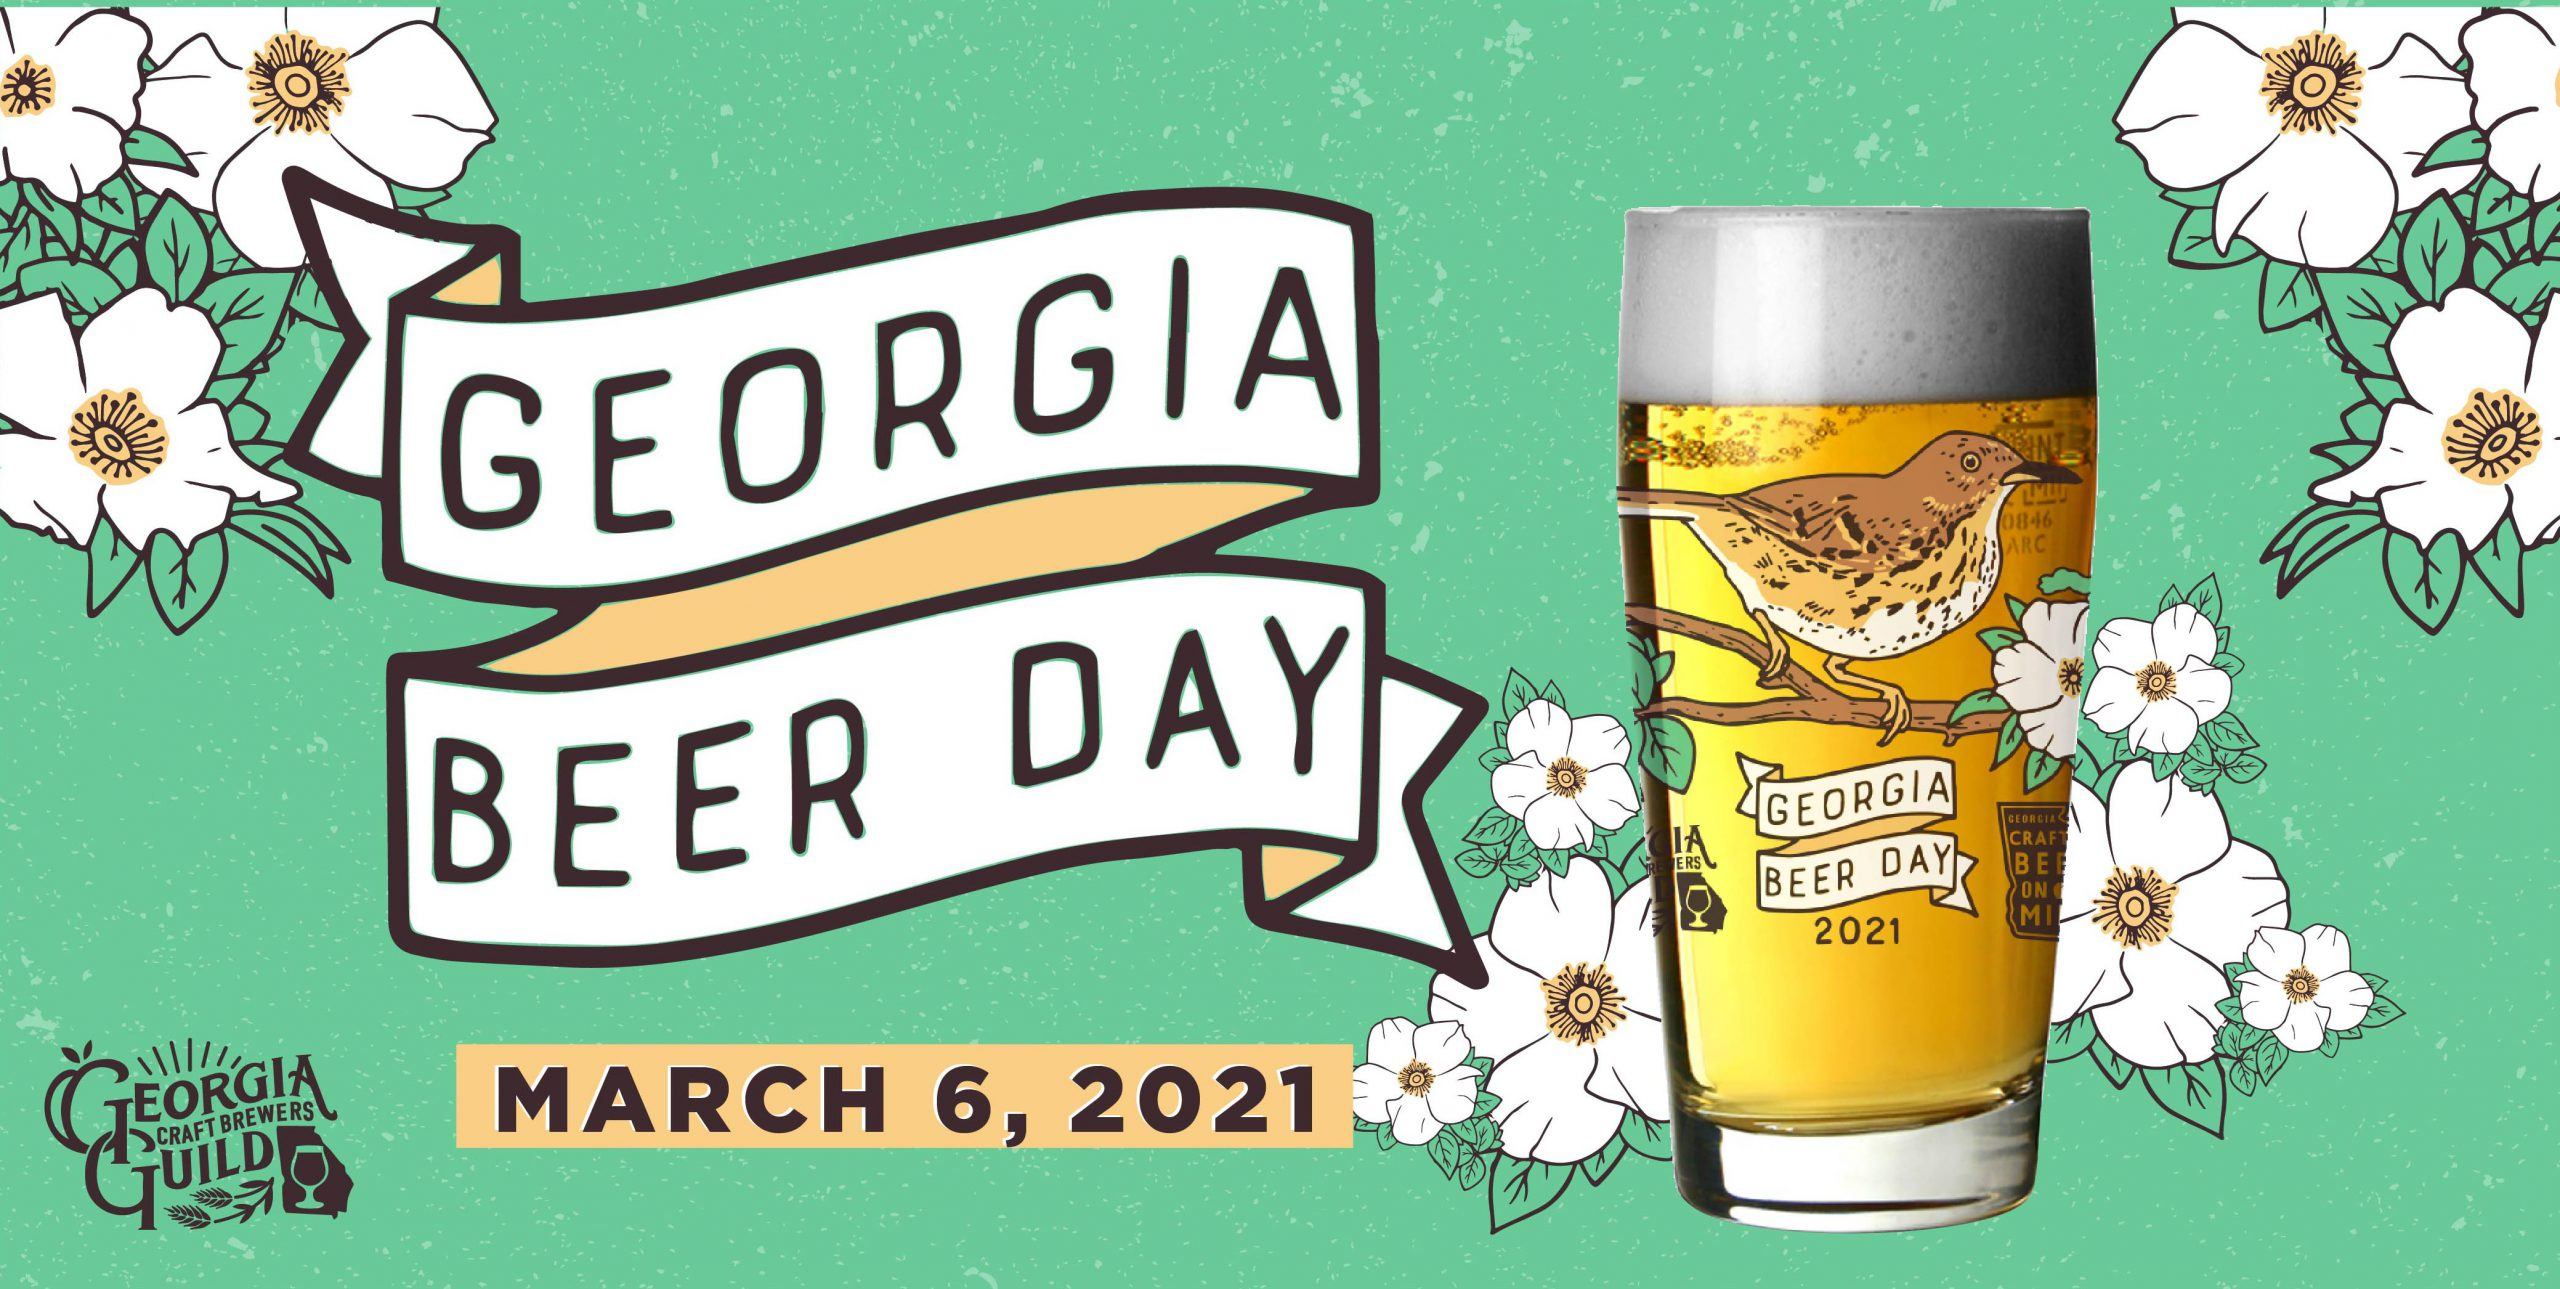 Georgia Beer Day Set For March 6 Brewbound